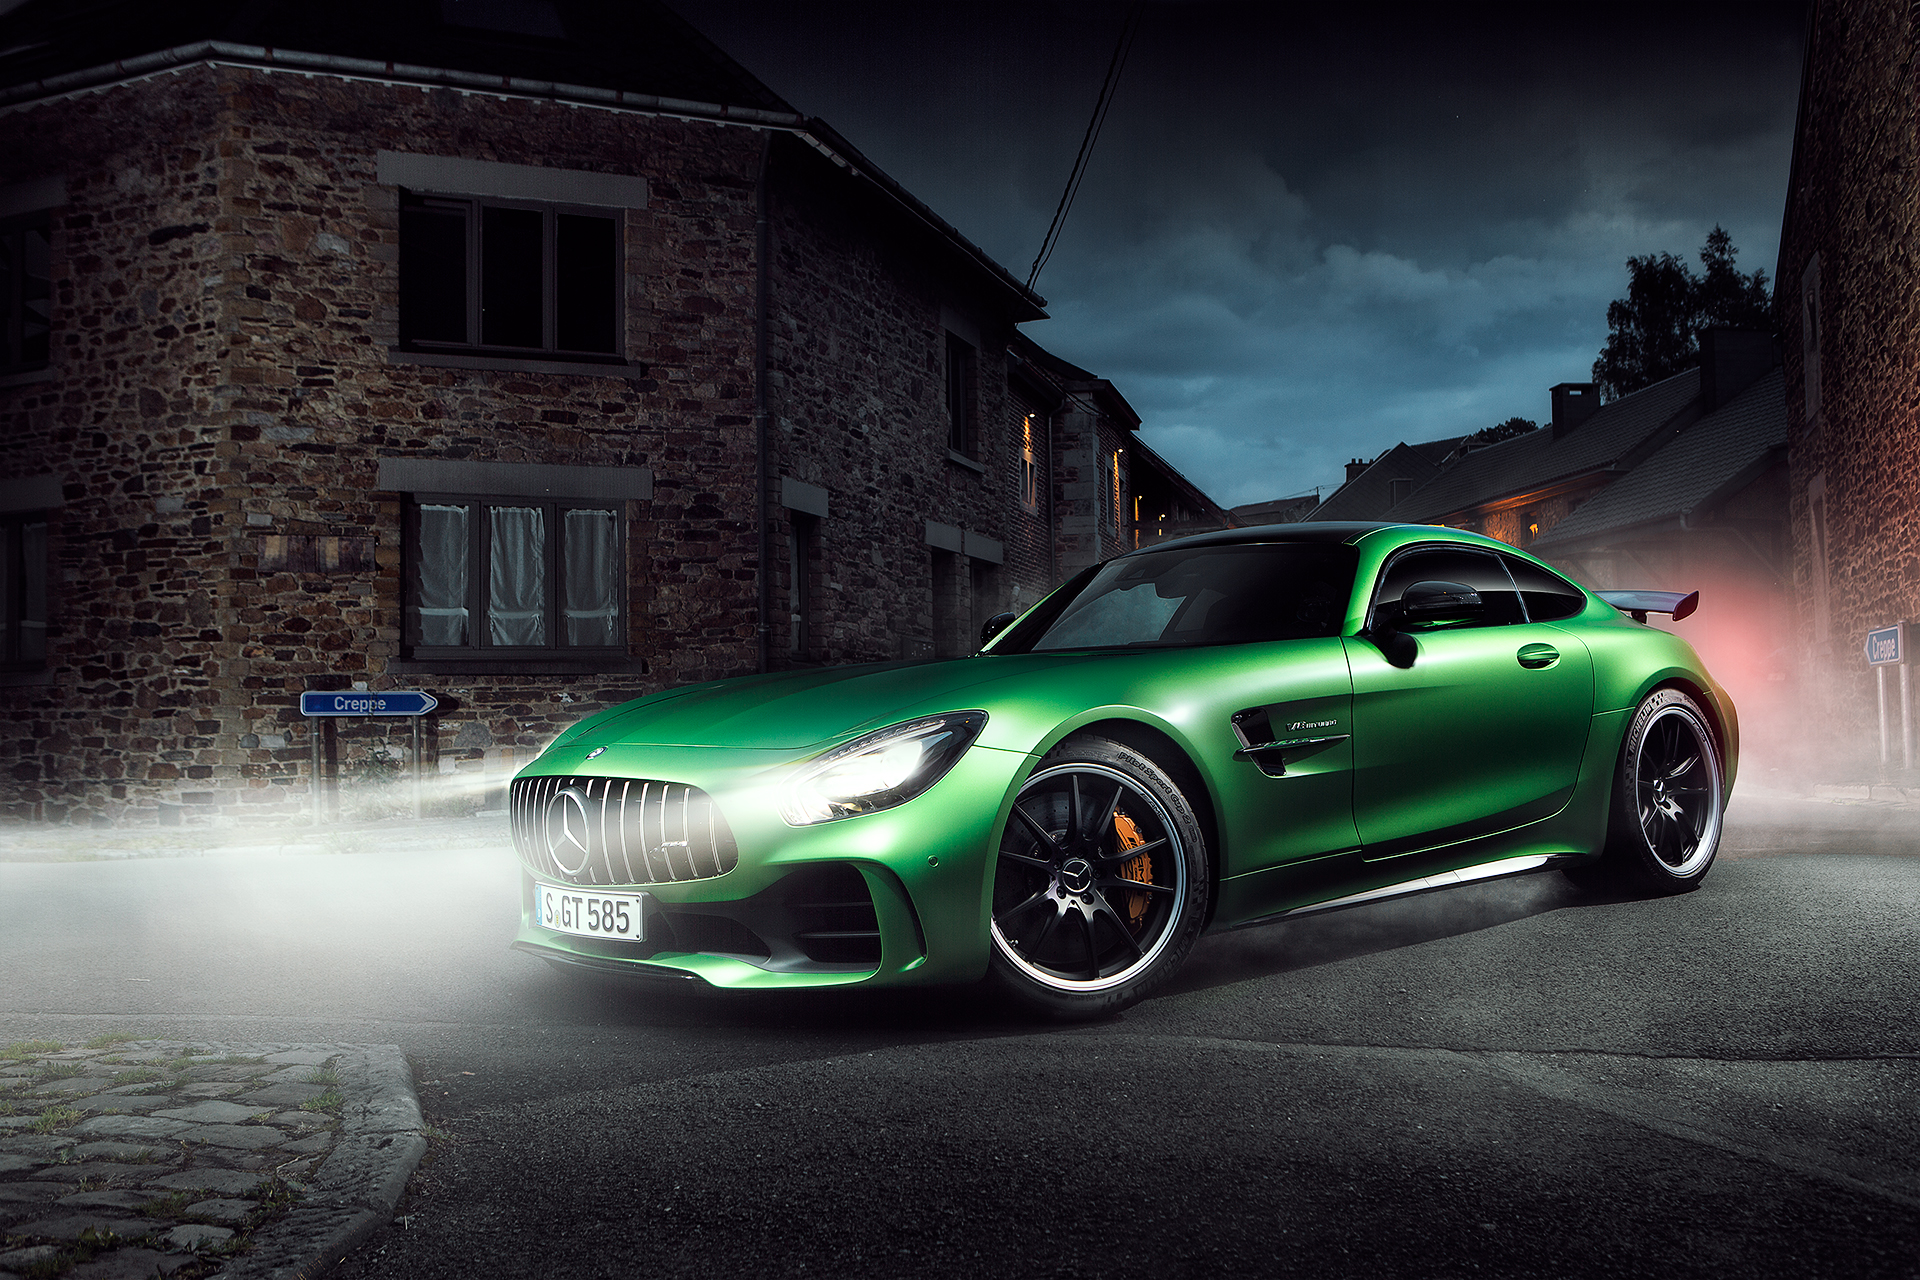 stefan bischoff photography mercedes benz amg gt r. Black Bedroom Furniture Sets. Home Design Ideas